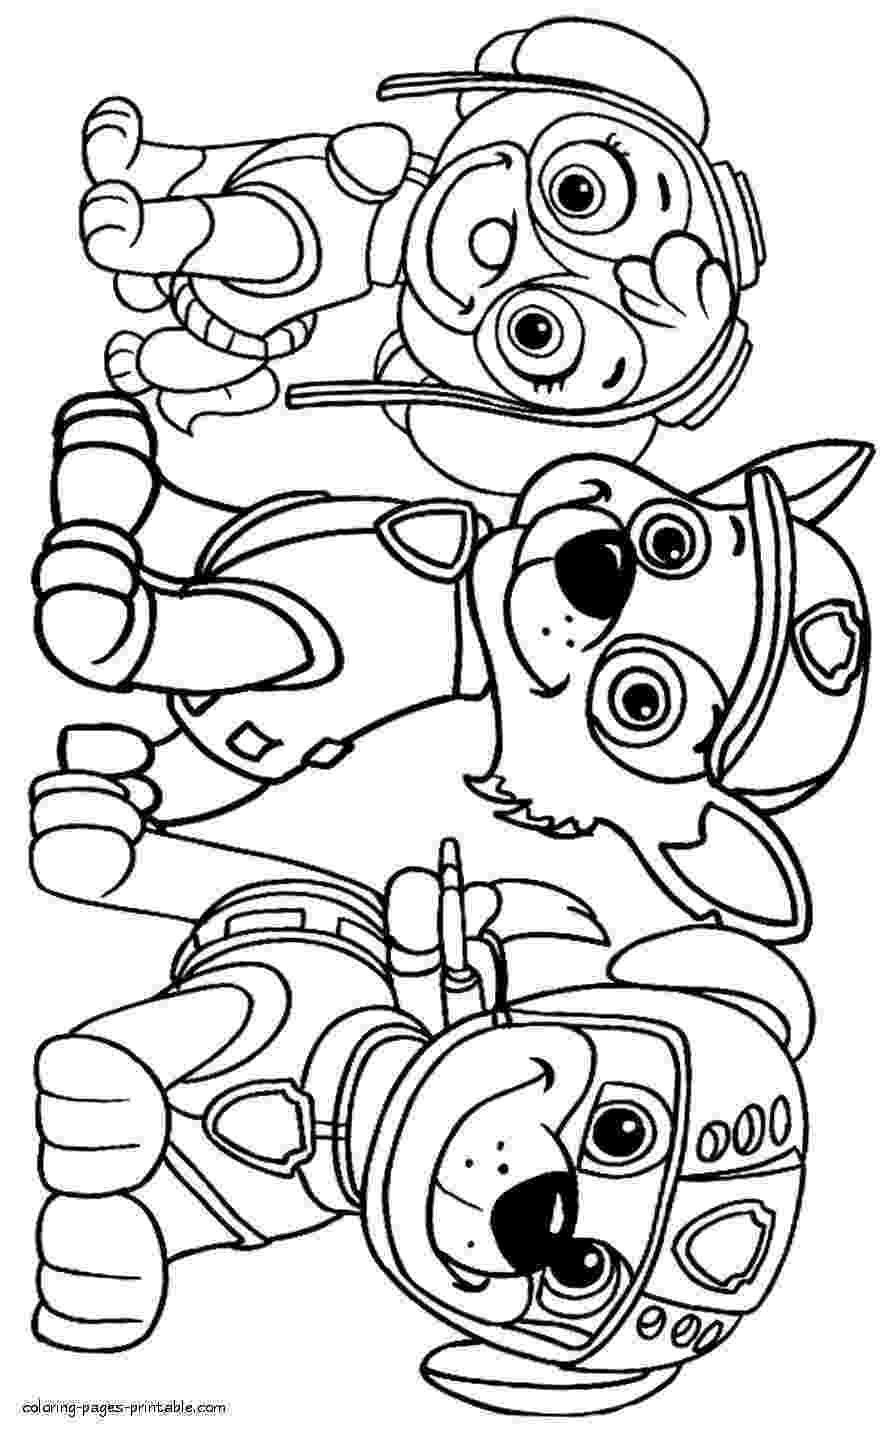 coloring pages of paw patrol paw patrol coloring pages paw patrol coloring pages paw pages paw patrol coloring of